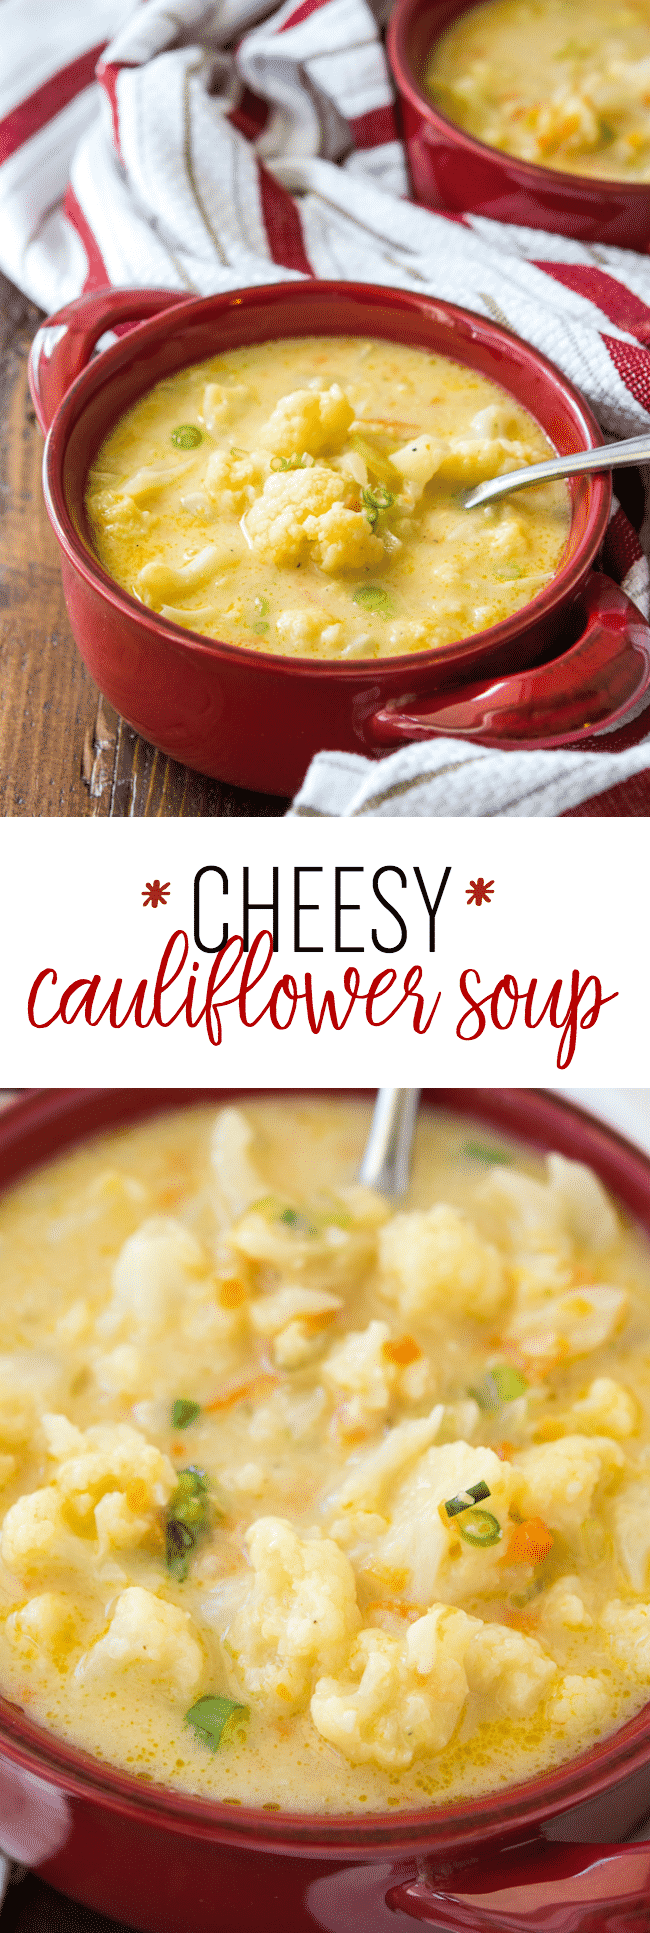 Cheesy Cauliflower Soup Recipe - This creamy and flavorful soup will warm you up!